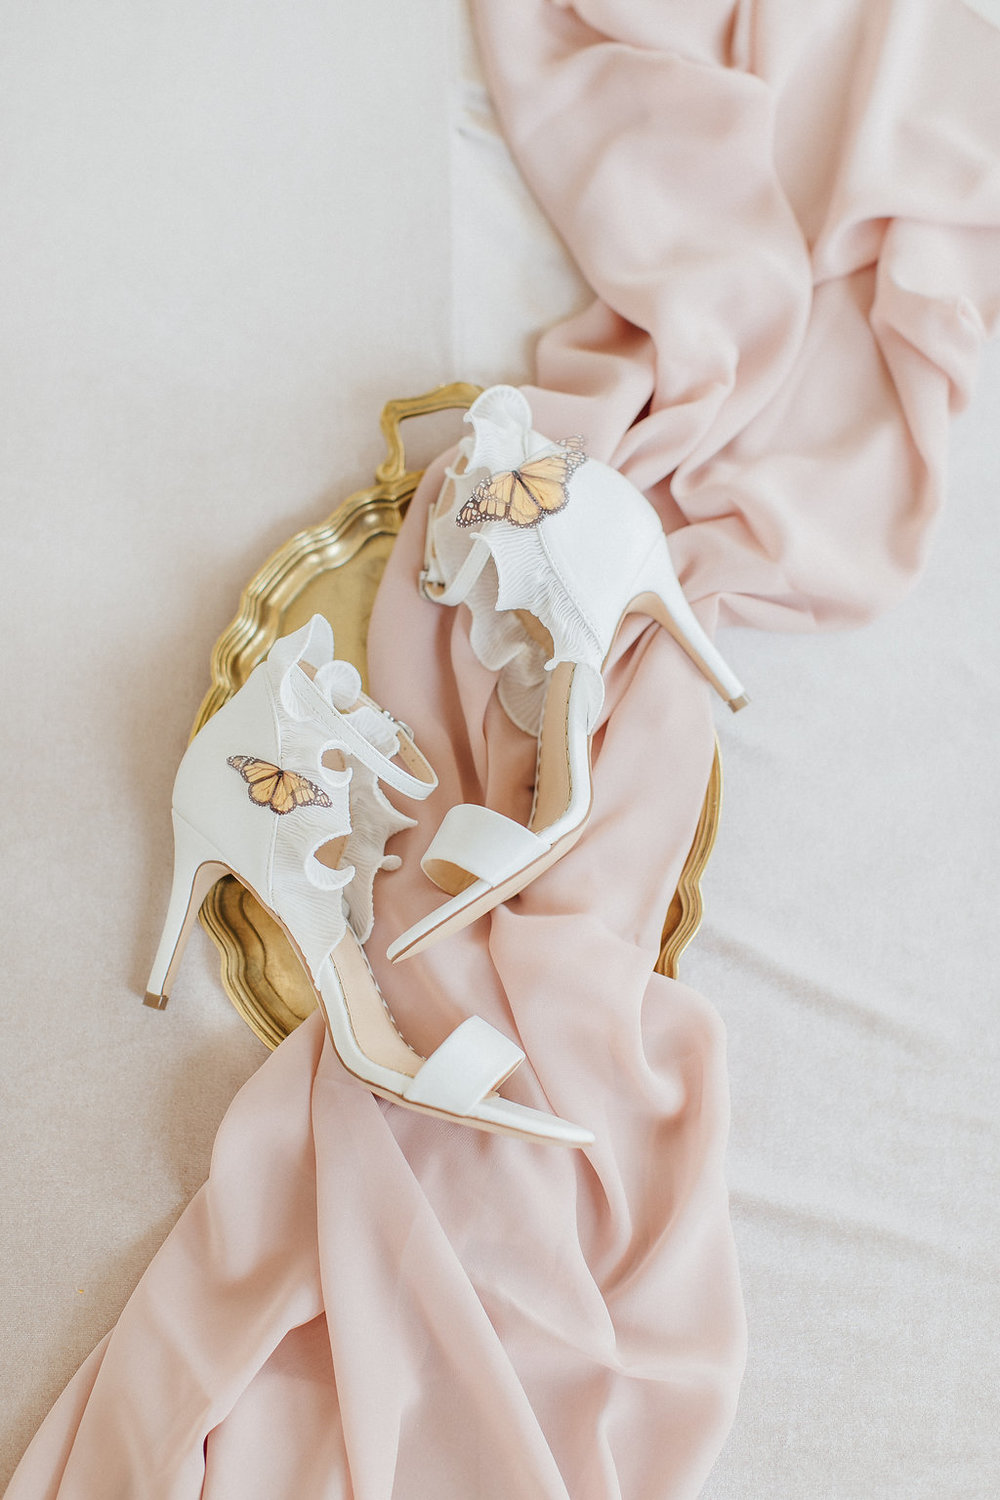 wedding shoes, wedding inspo, wedding details